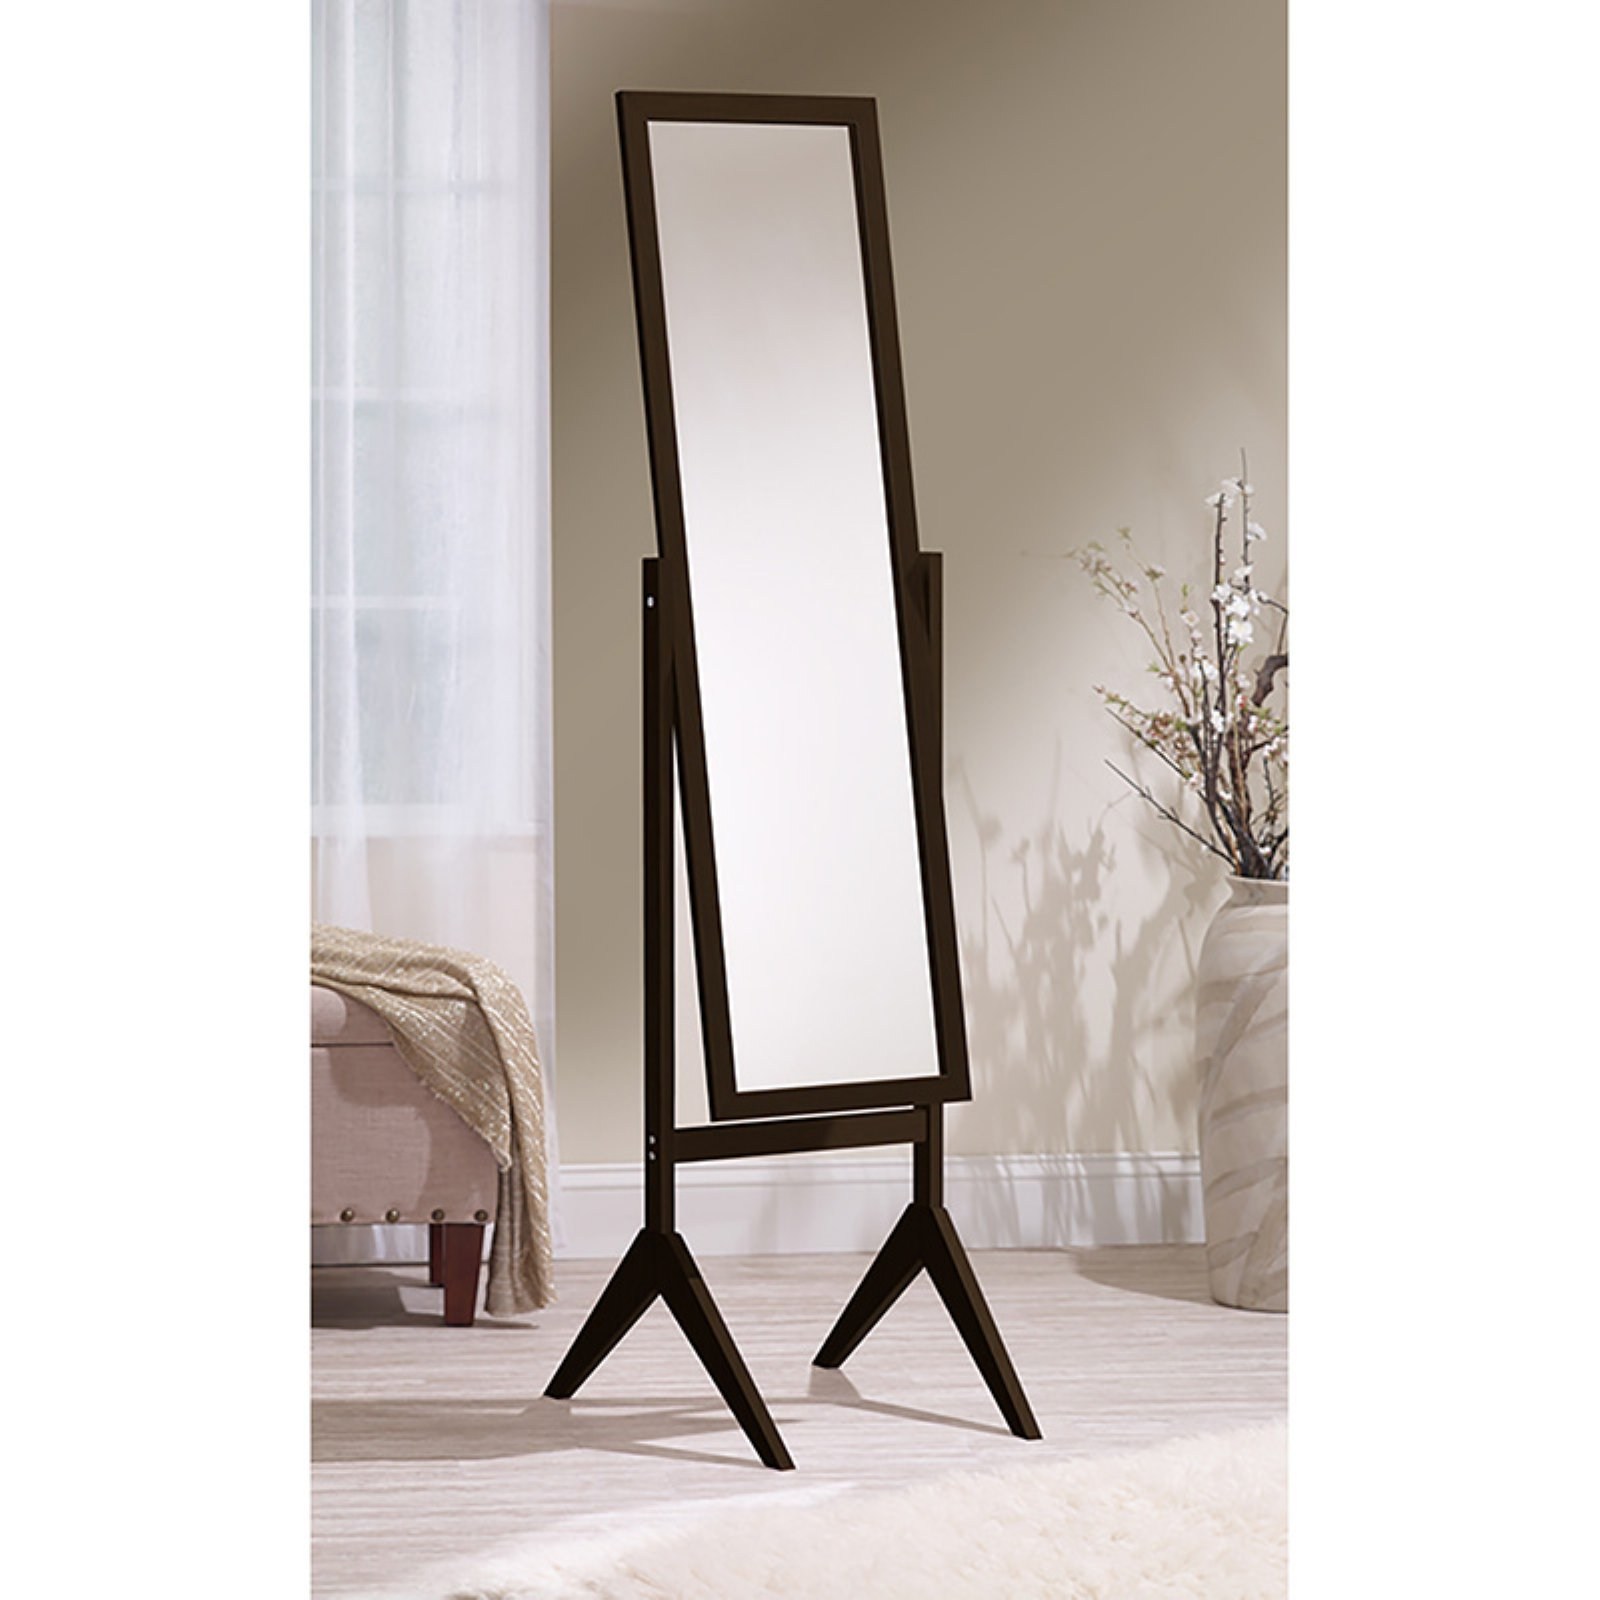 Mirrotek Freestanding Full Length Cheval Mirror